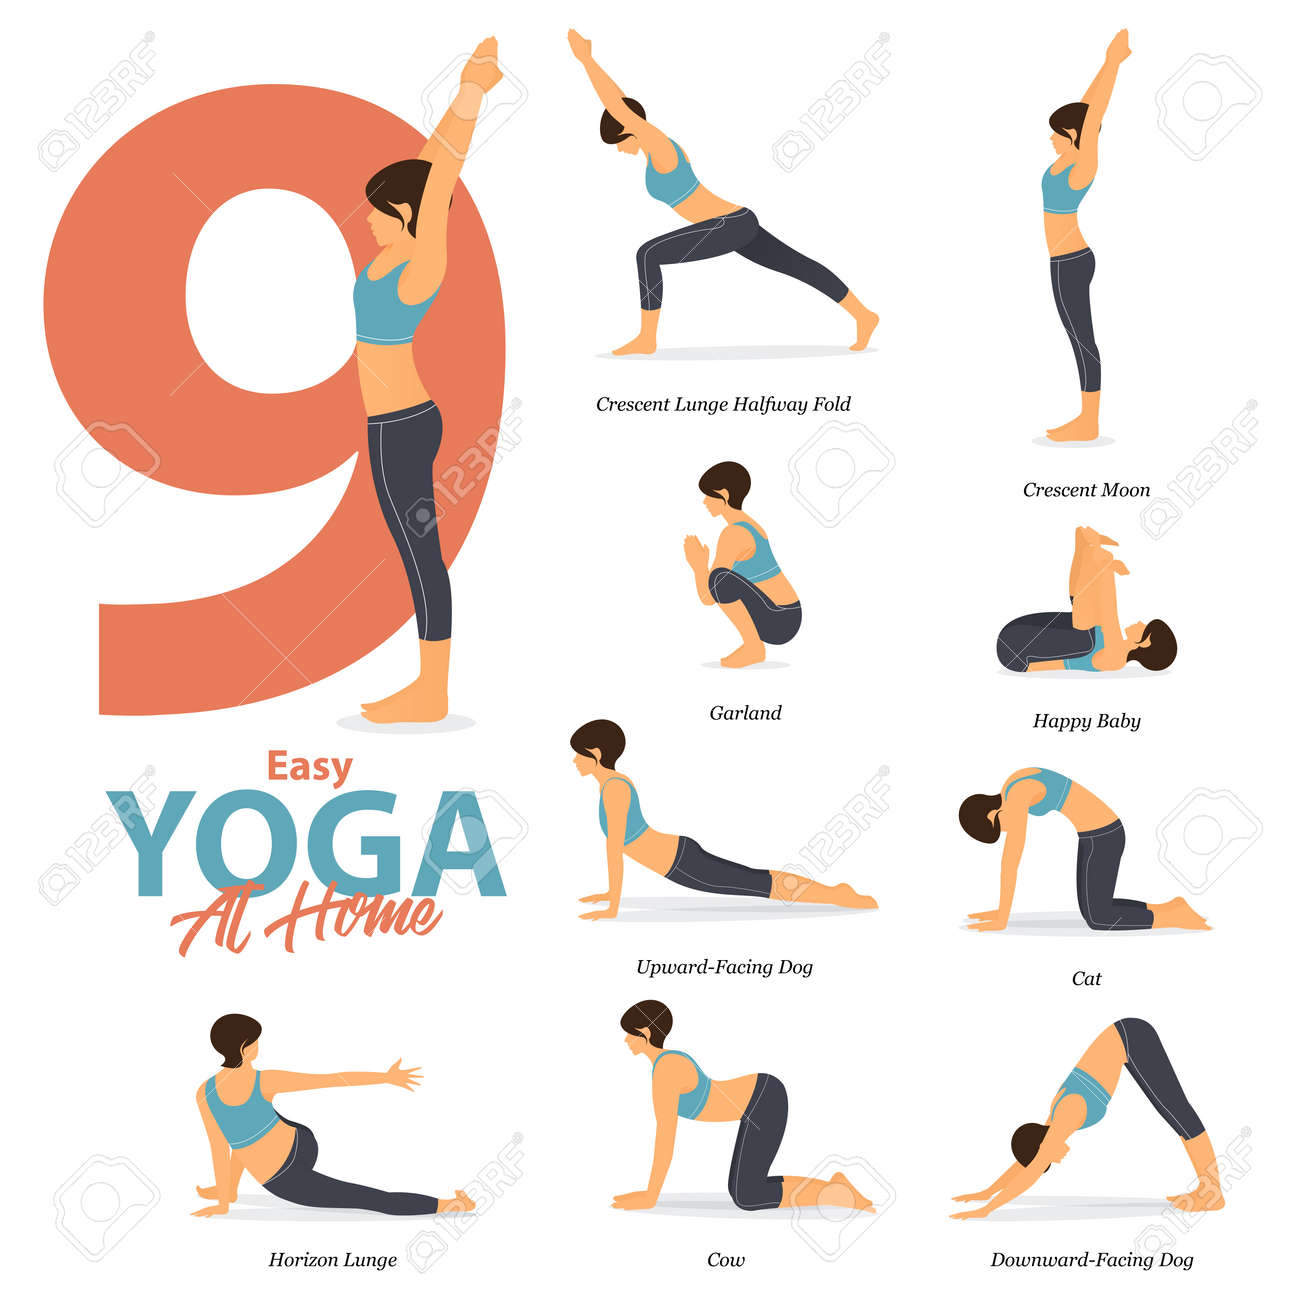 Infographic of 37 Yoga poses for Easy yoga at home in flat design